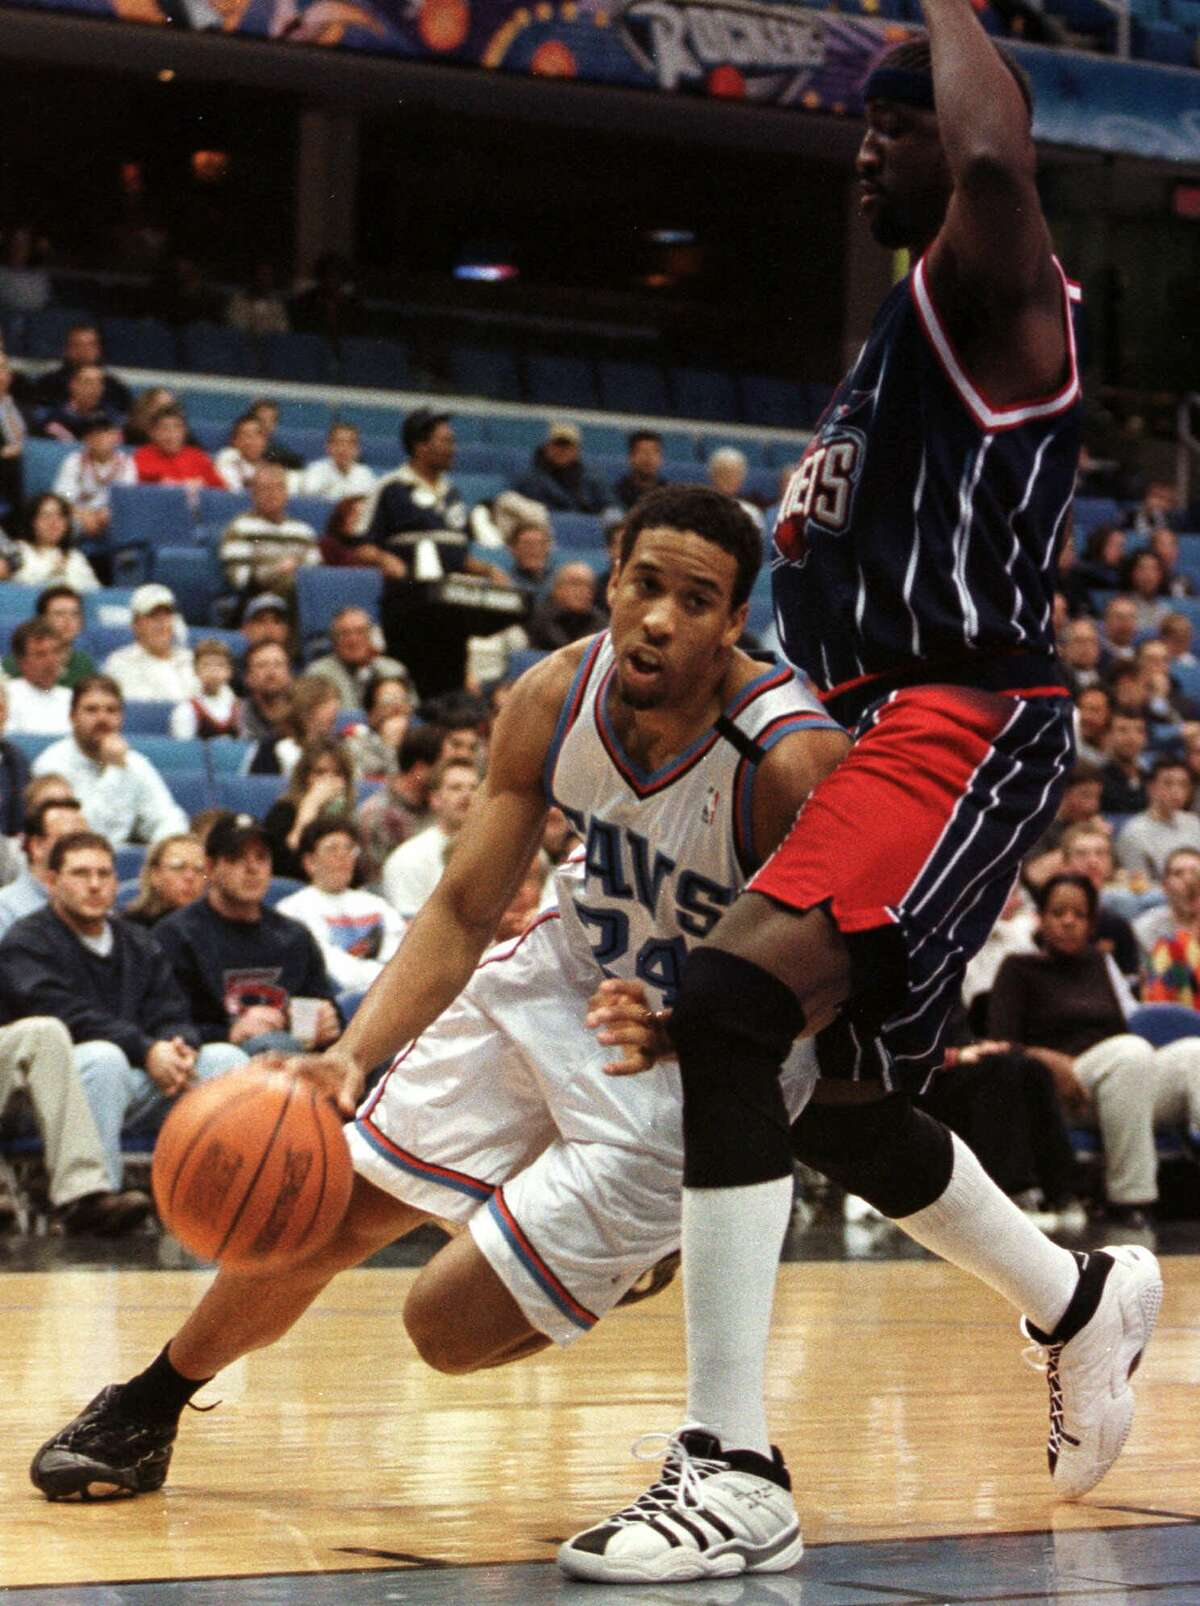 11. He led the league in assists over a decade ago Miller led the NBA in total assists (882) and assists per game (10.9) during the 2001-02 season. He has finished in the top 10 in assists per game eight times in his career, and he is the league's active leader in total dimes (8,495).